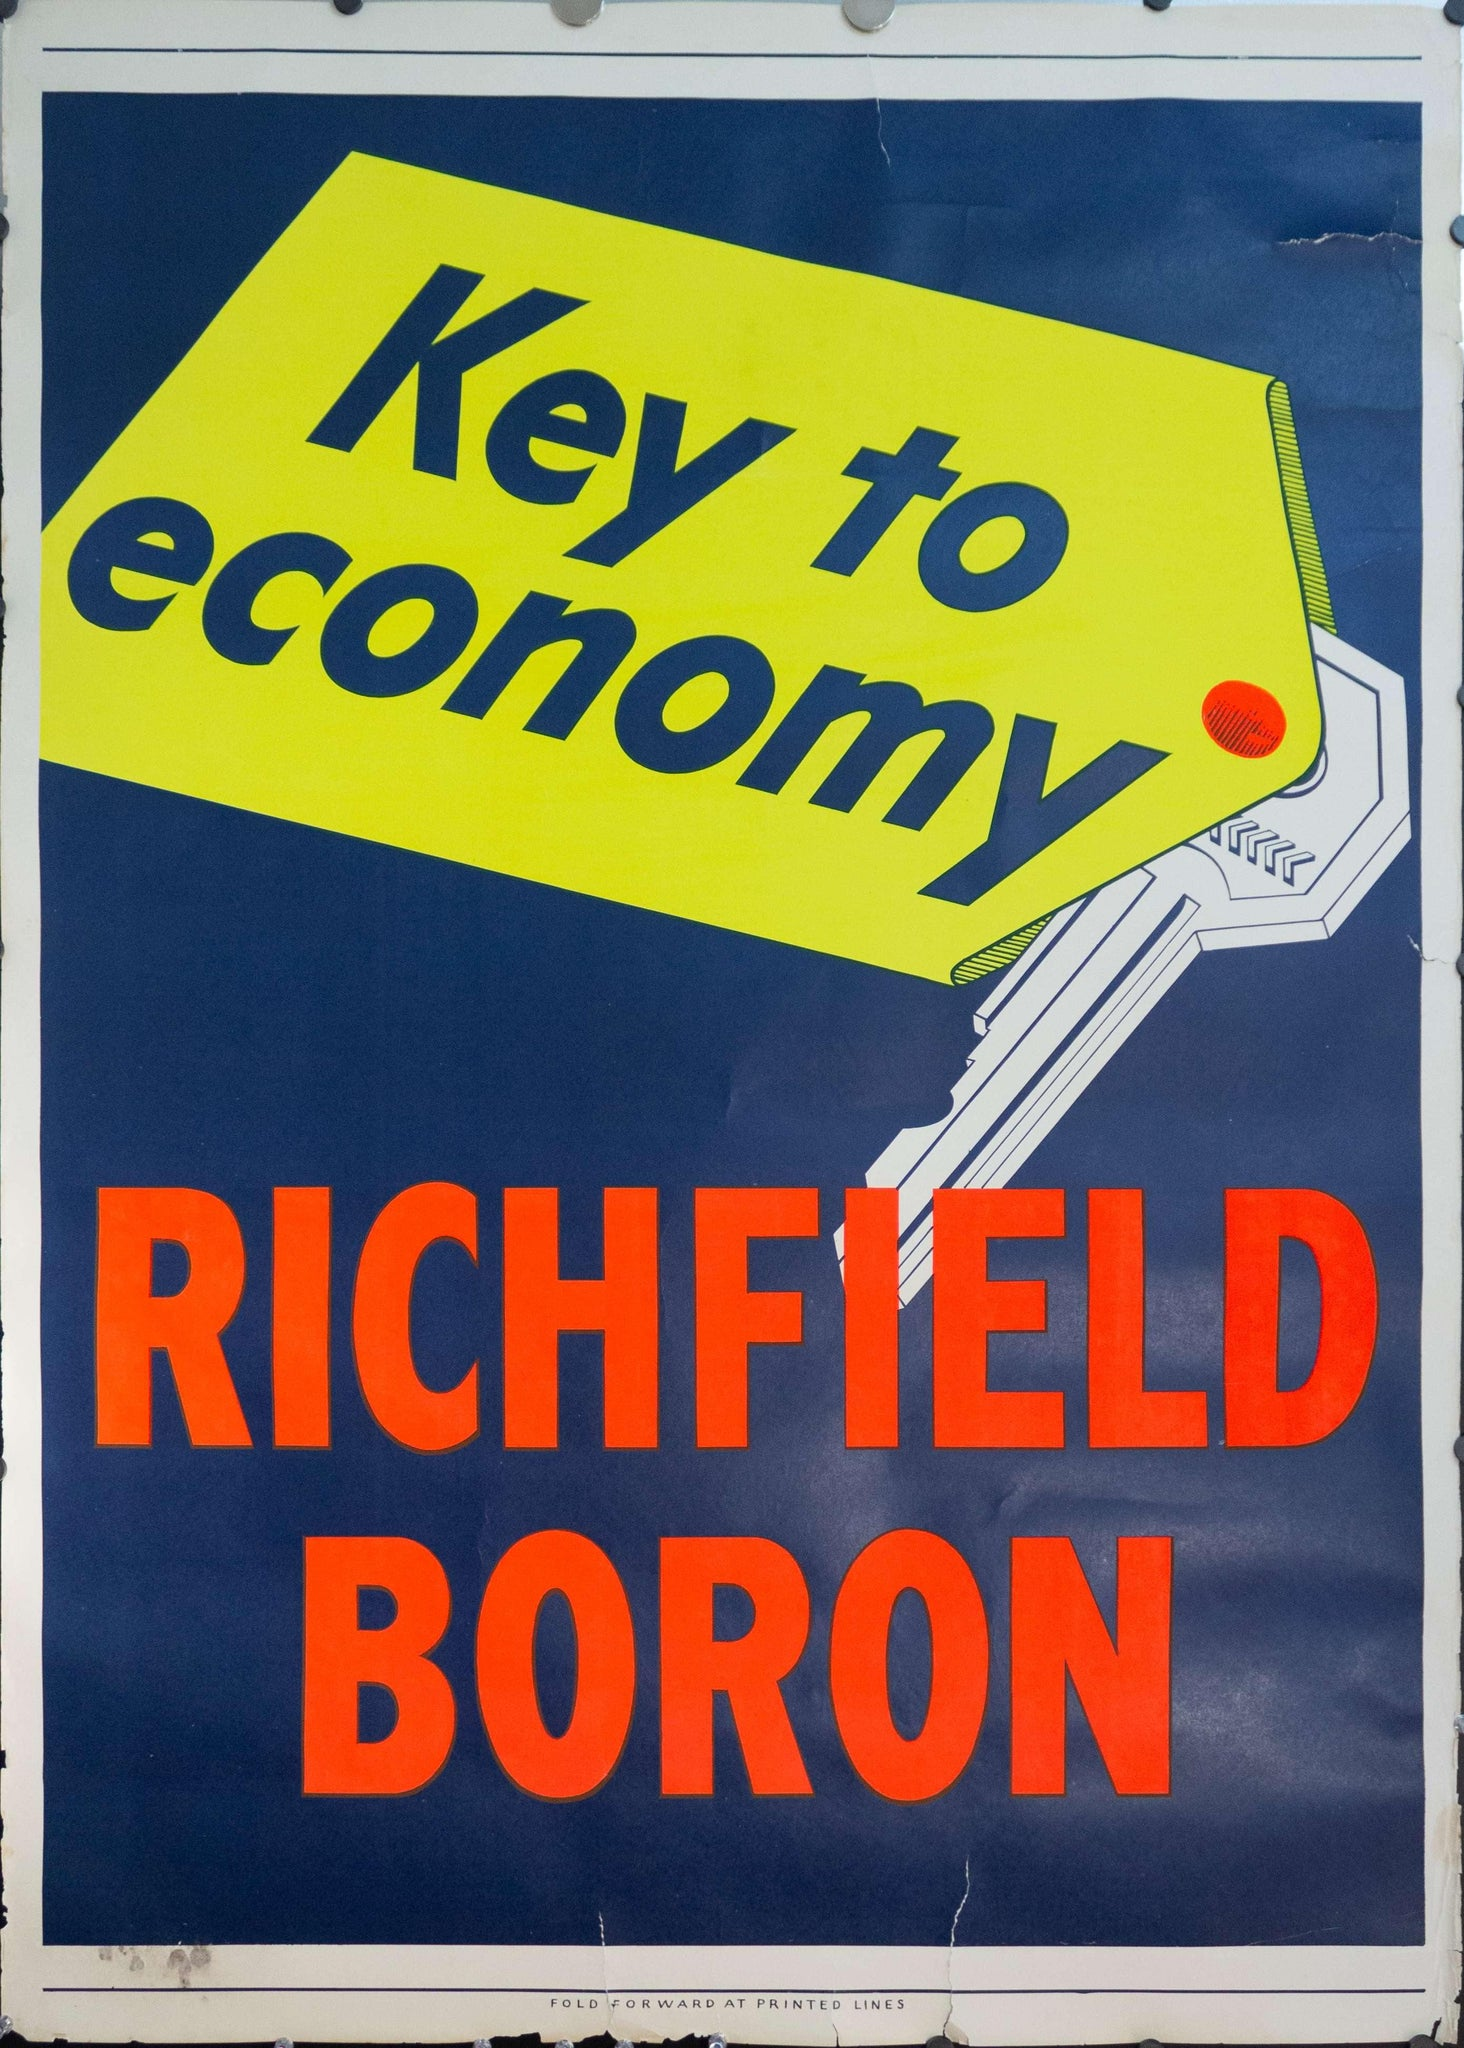 c. 1950s Key To Economy | Richfield Boron Oil